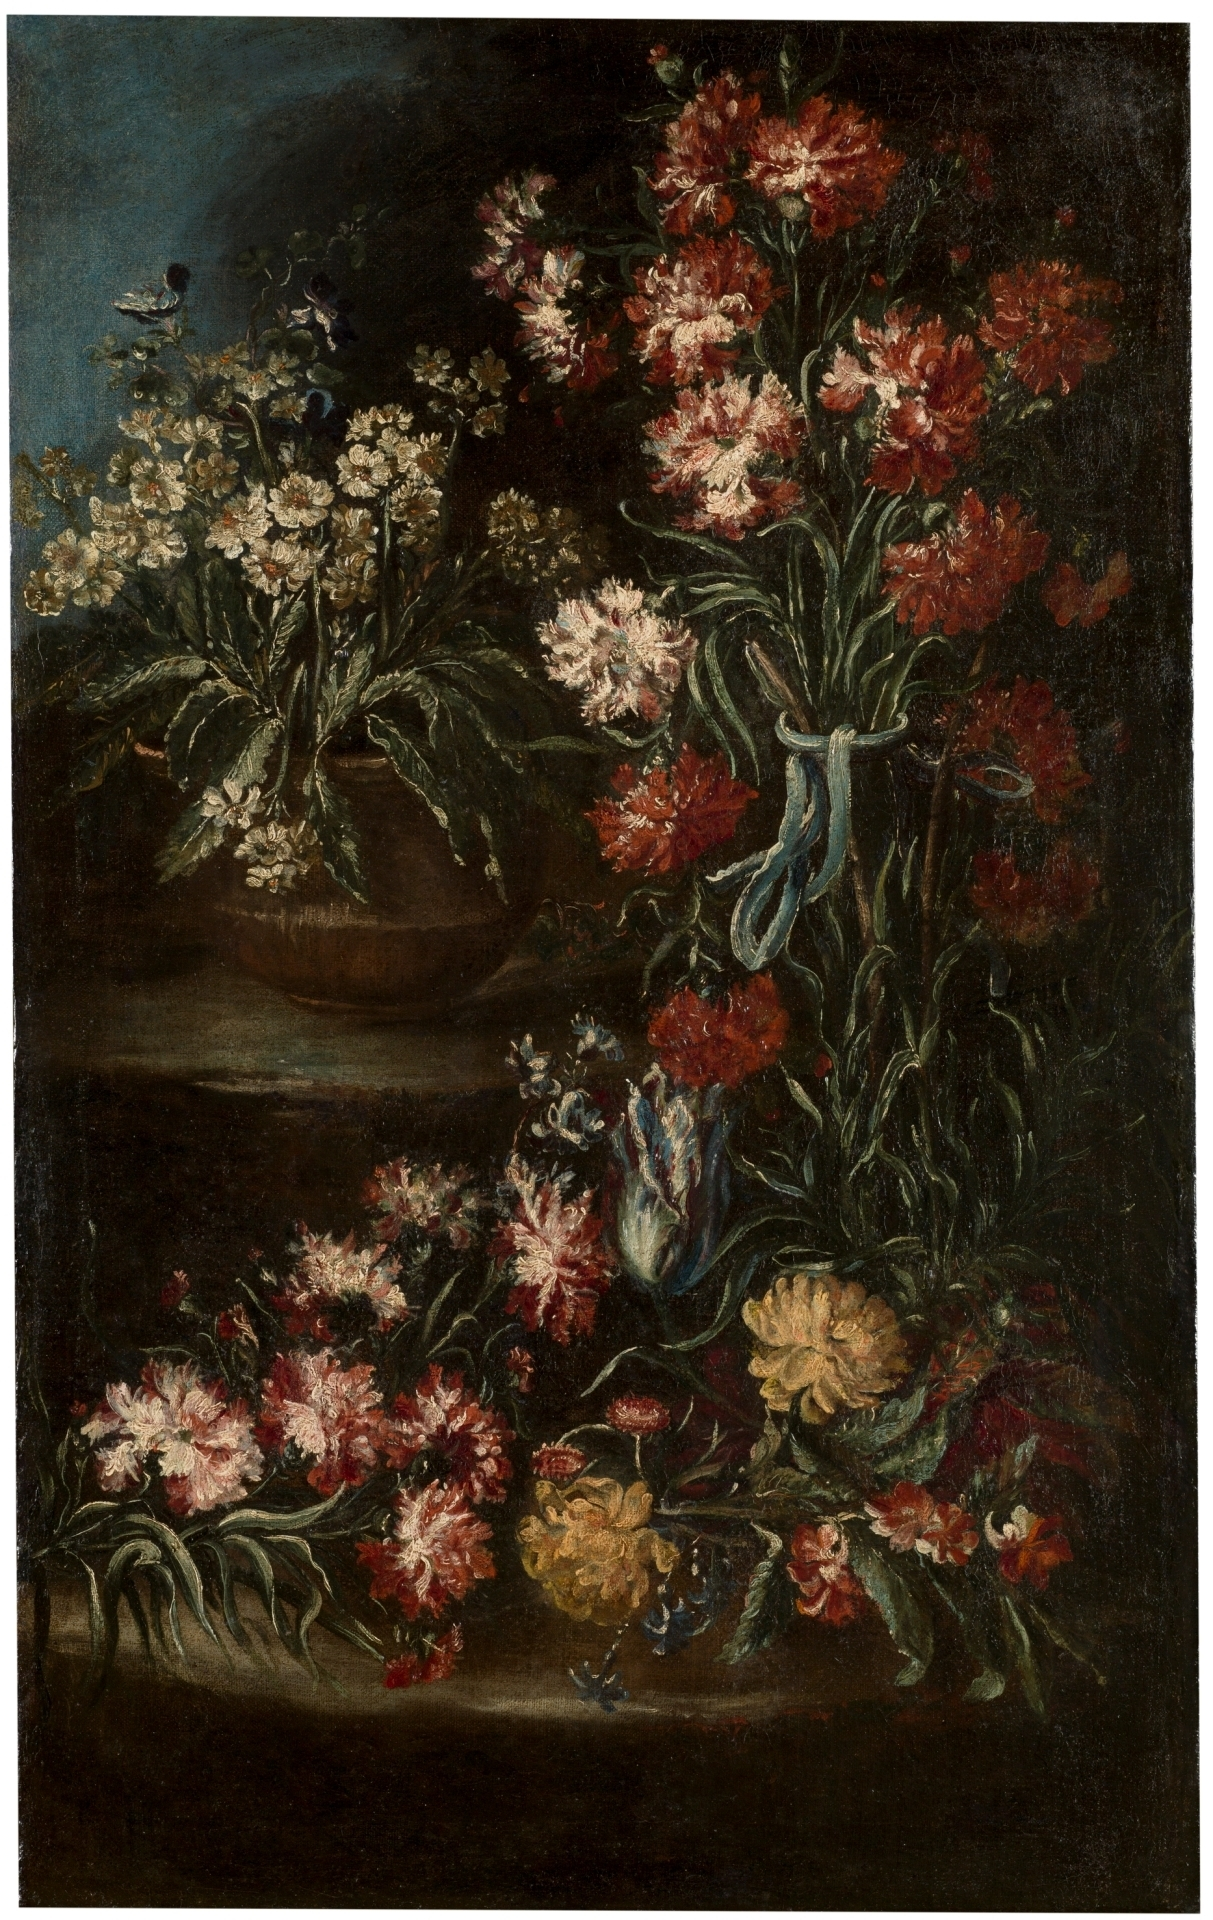 painting of dark flowers of various pinks, yellows and reds with black background.